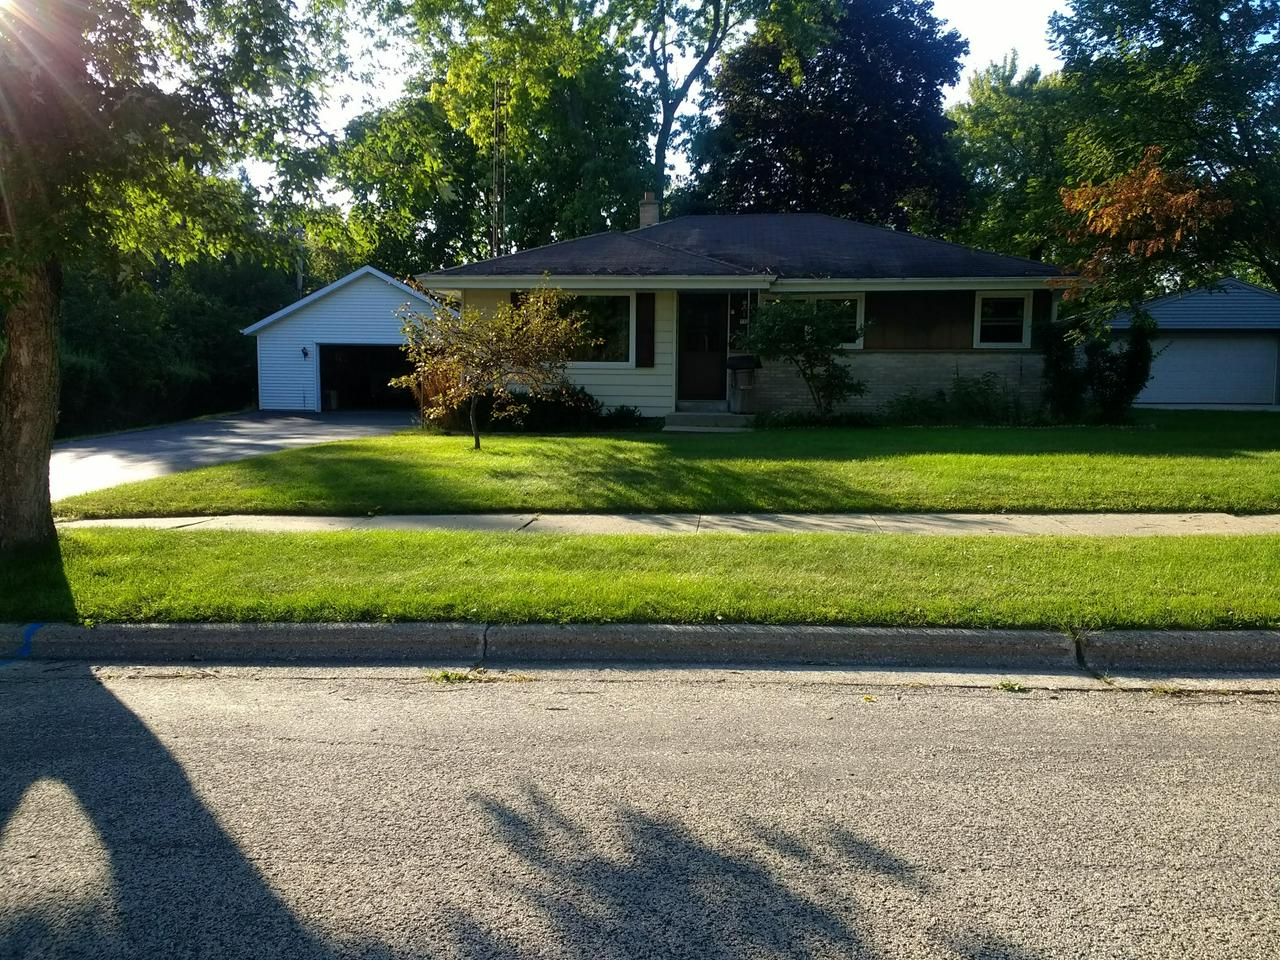 Come see this lovely 3 bedroom, 1 bath ranch home. The home features updated windows, entry doors, furnace, water softener (owned) and water heater. The garage is an extra large 2.5 car garage with a work area and additional space in the loft above.